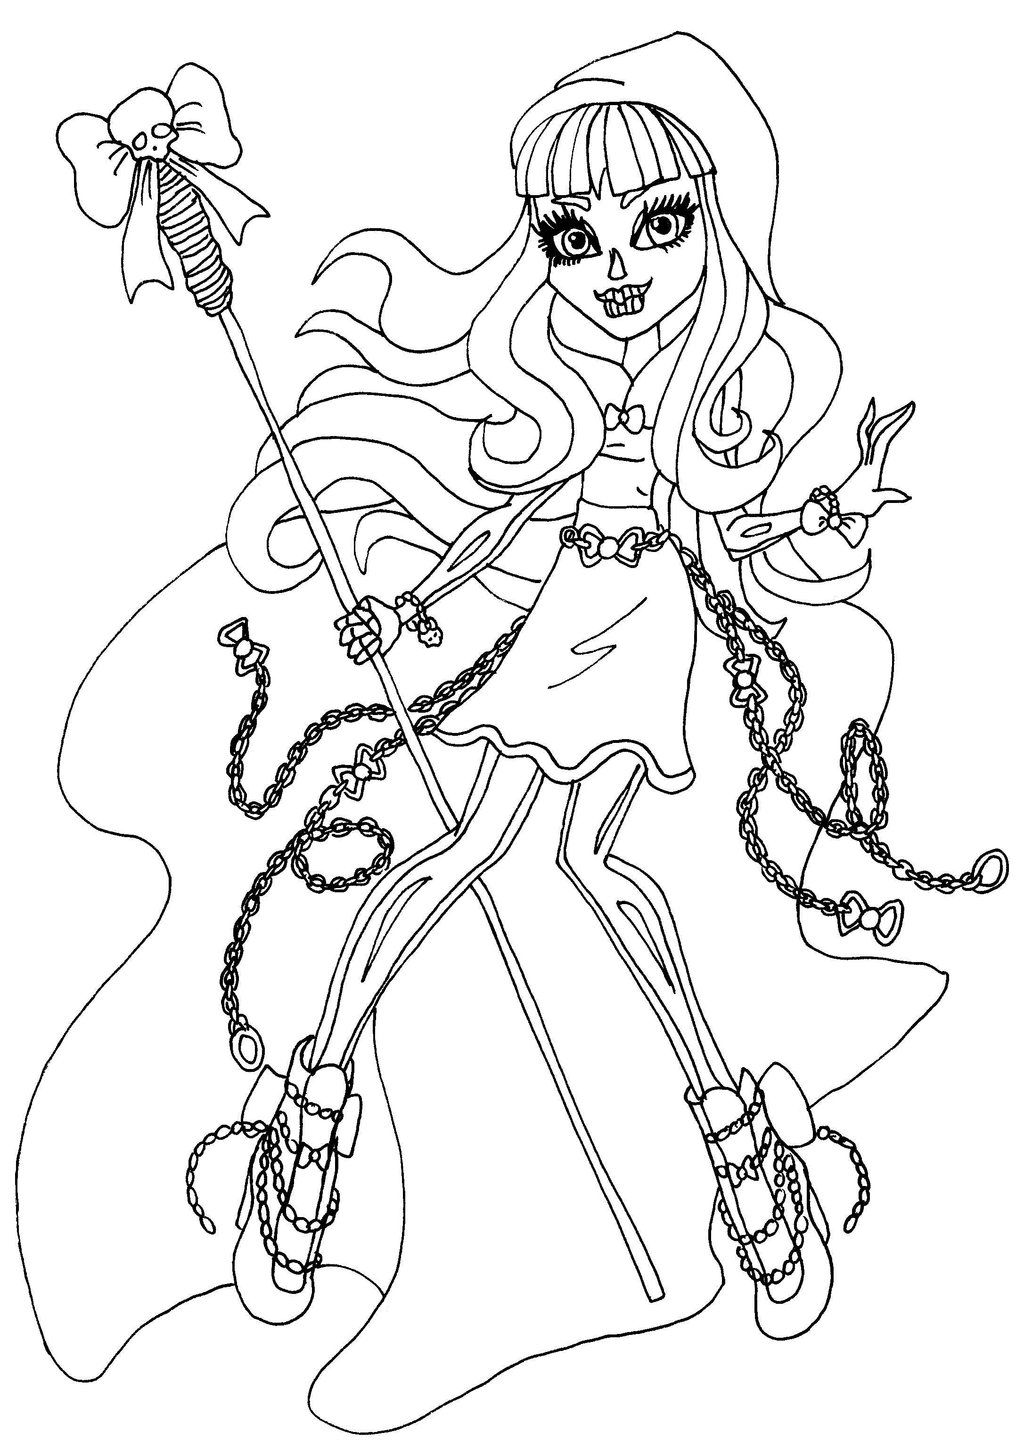 monster-high coloring pages 14,printable,coloring pages